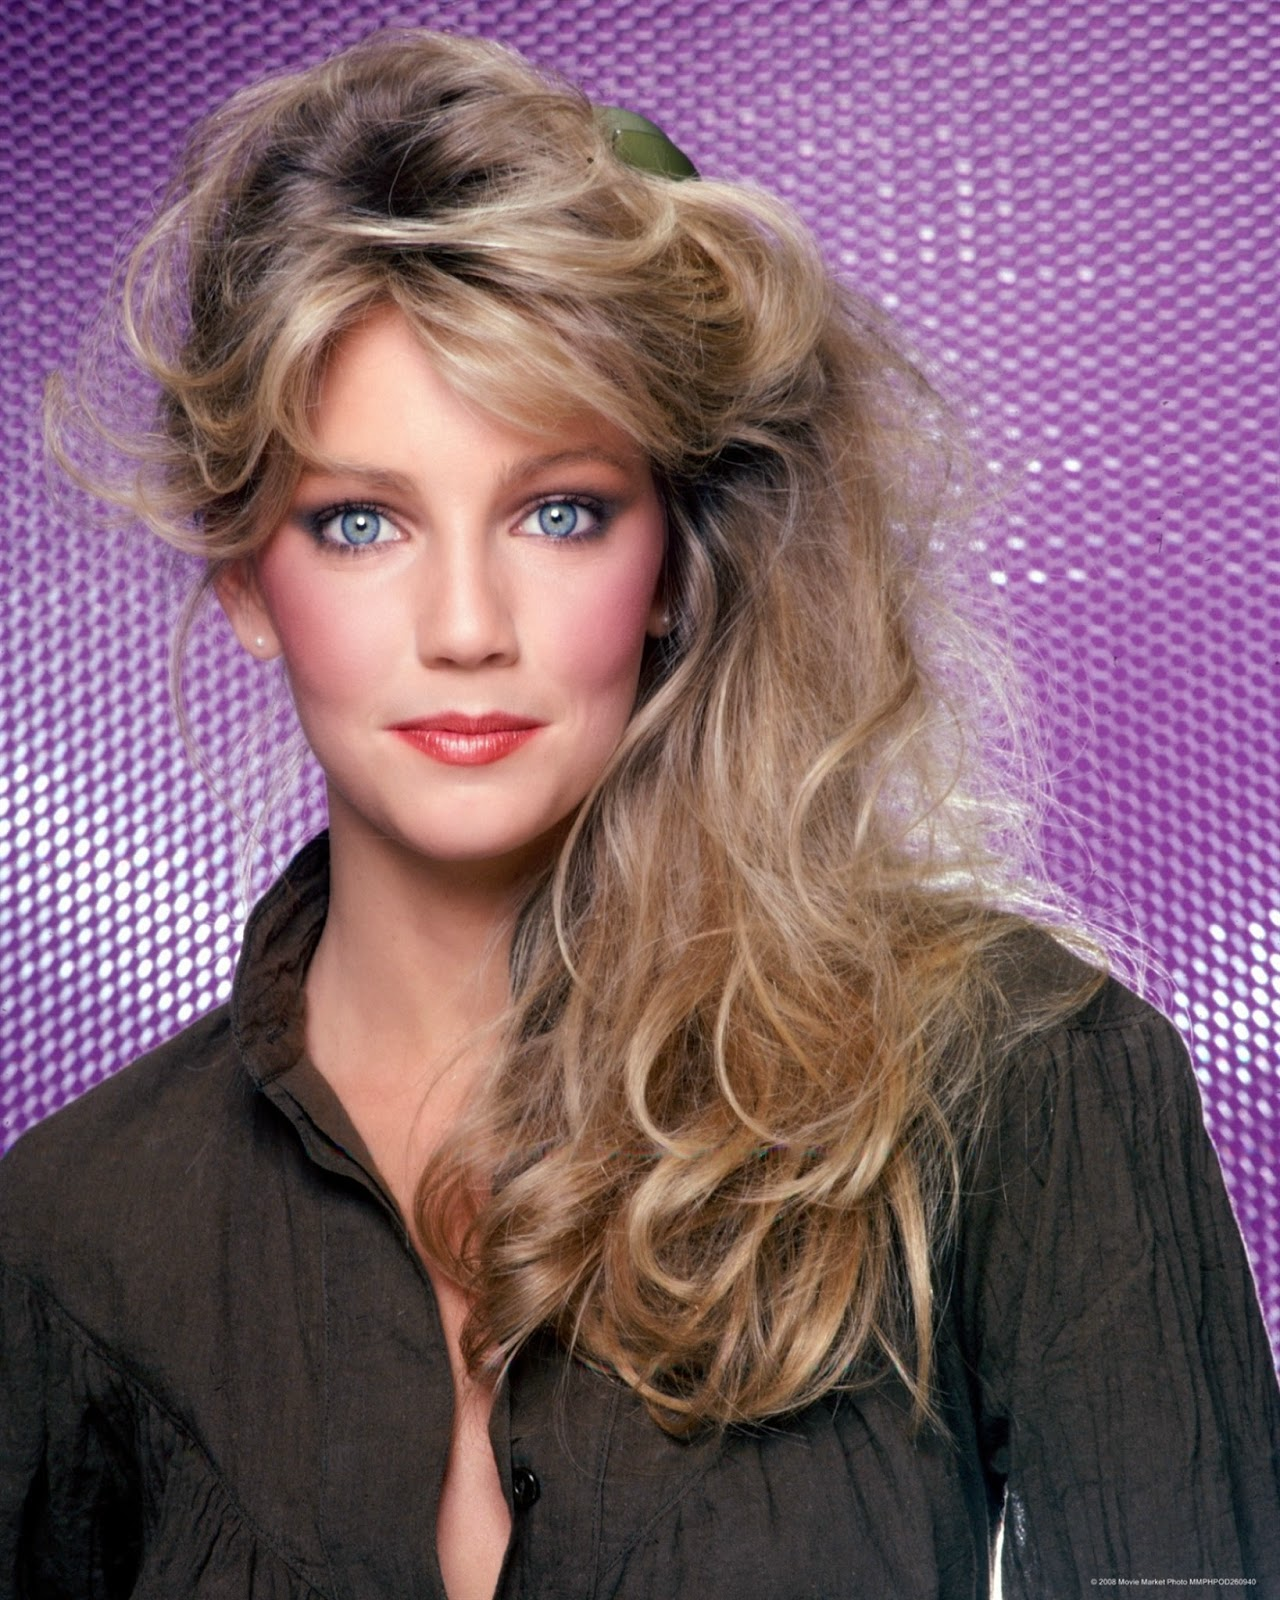 EBL: Heather Locklear